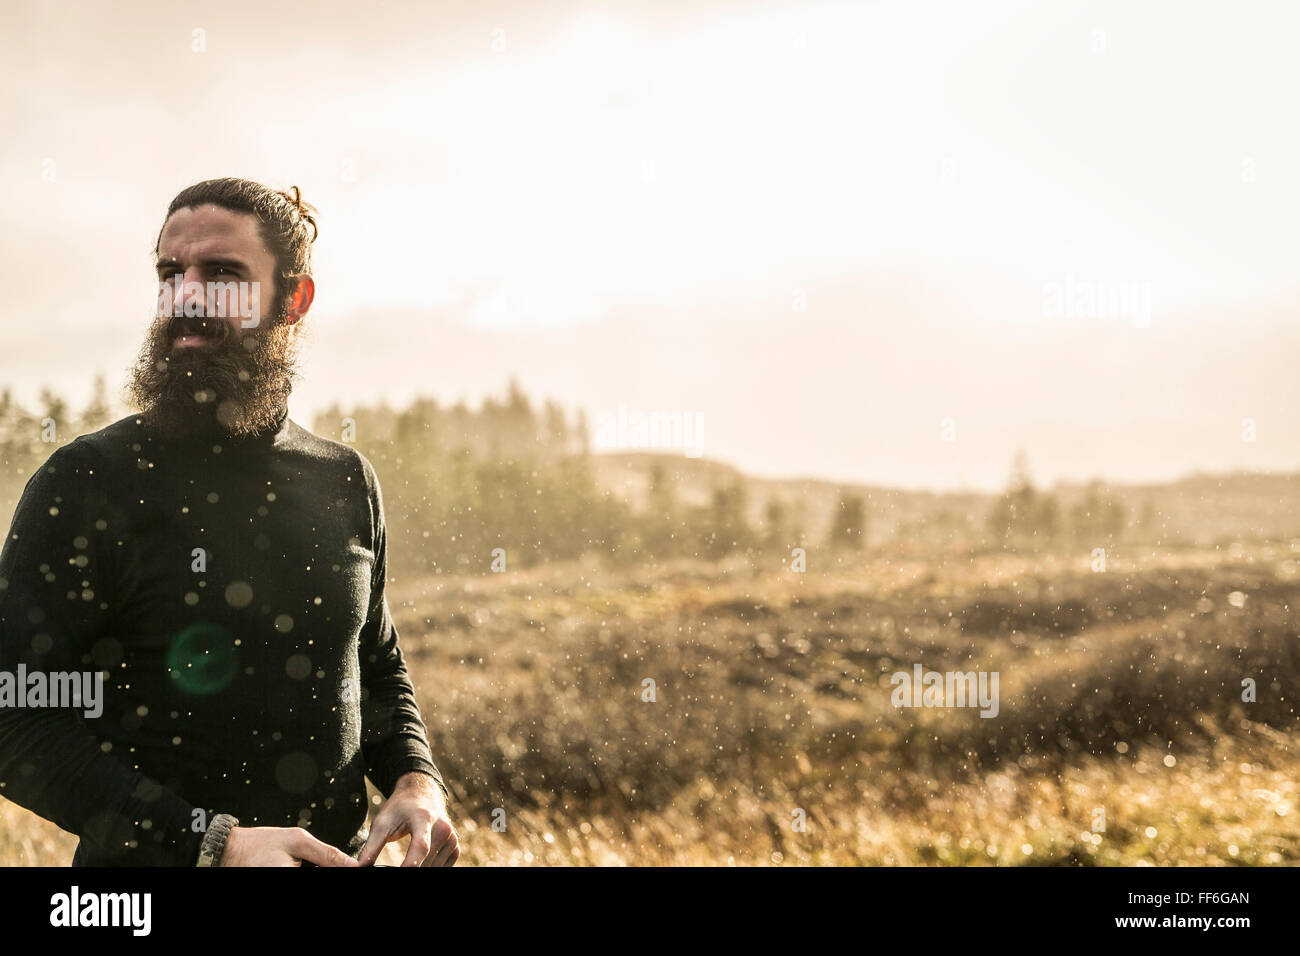 A man standing in sunlit open country in winter. - Stock Image